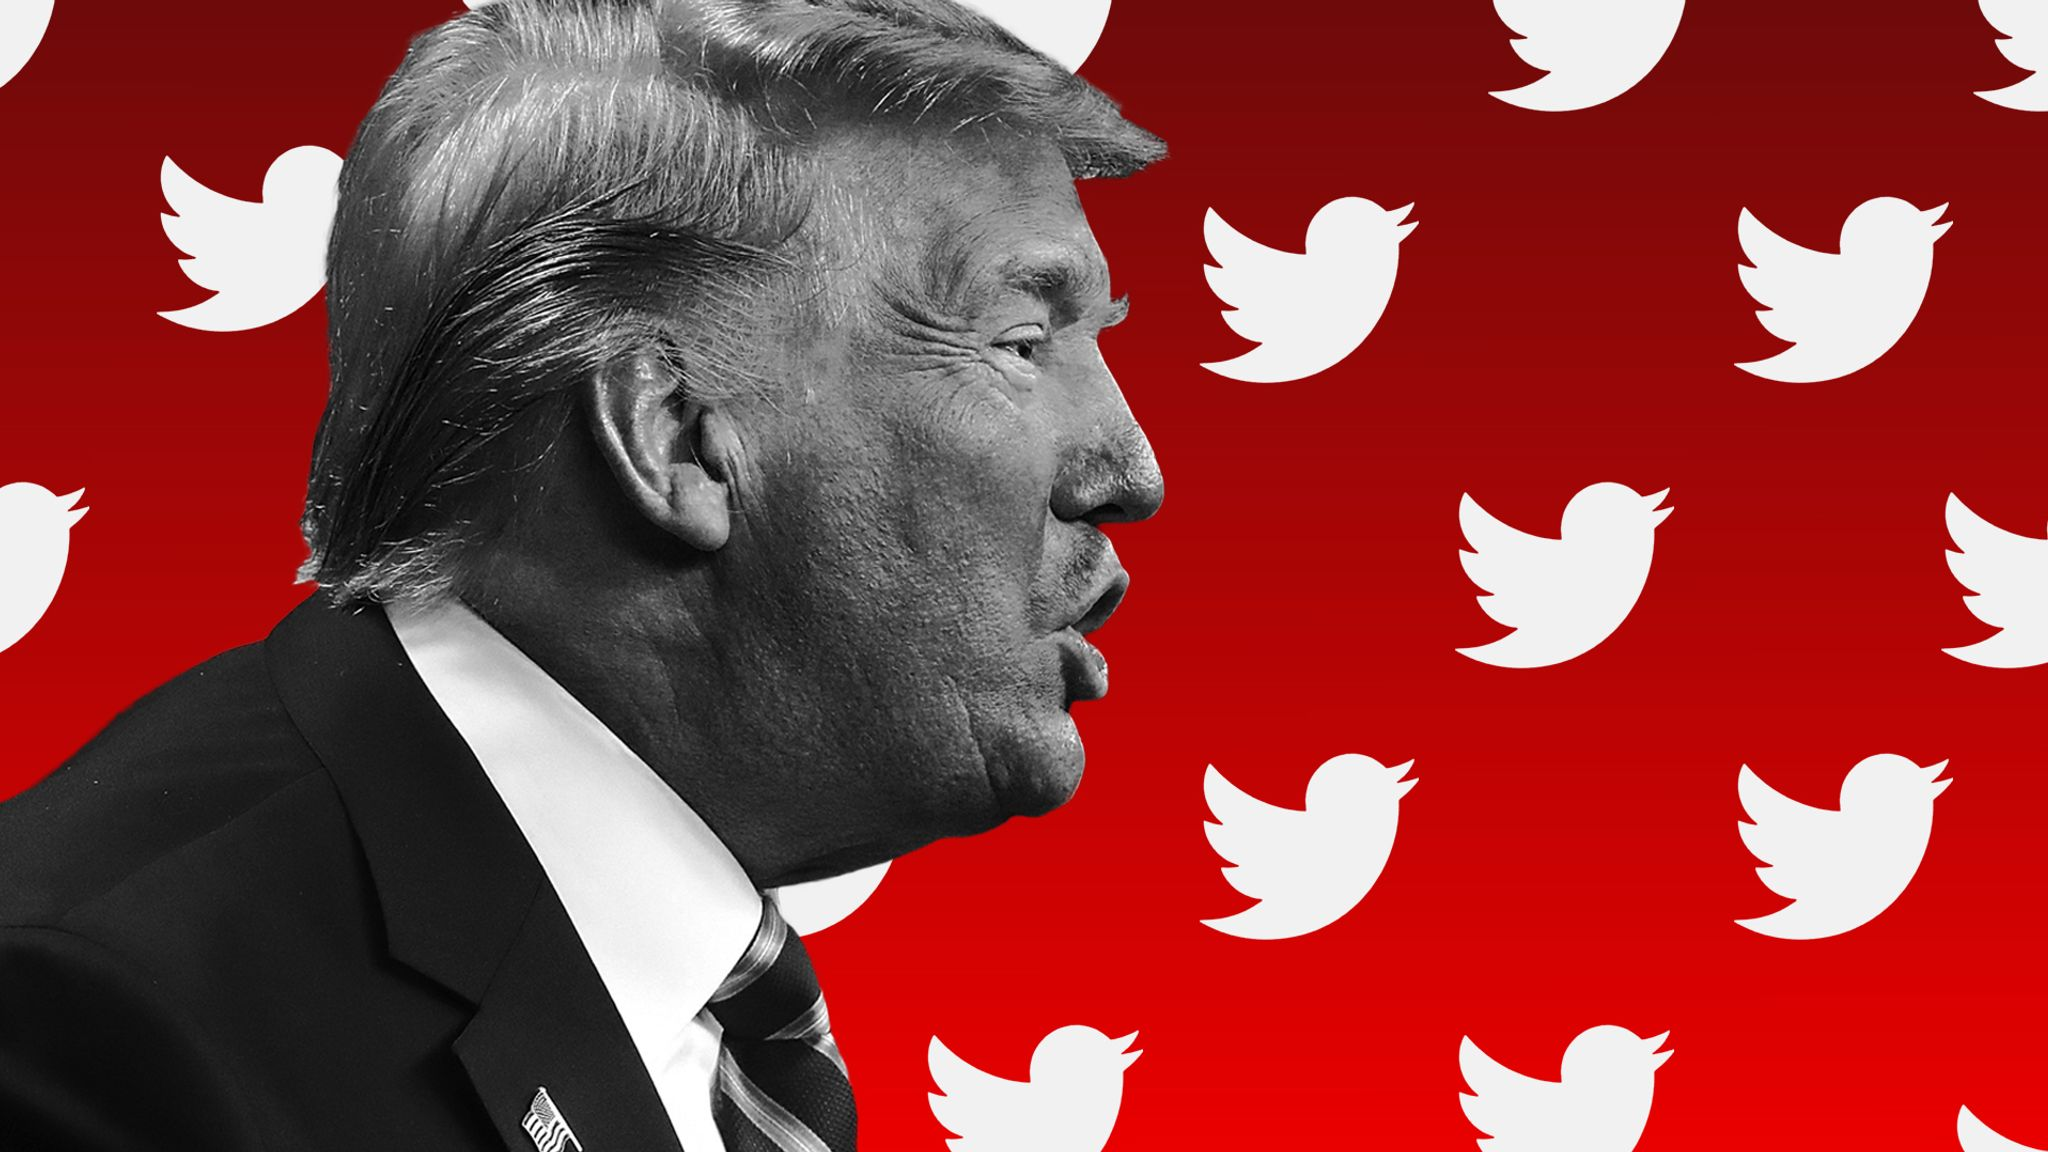 Trump Twitter Boring Without Him